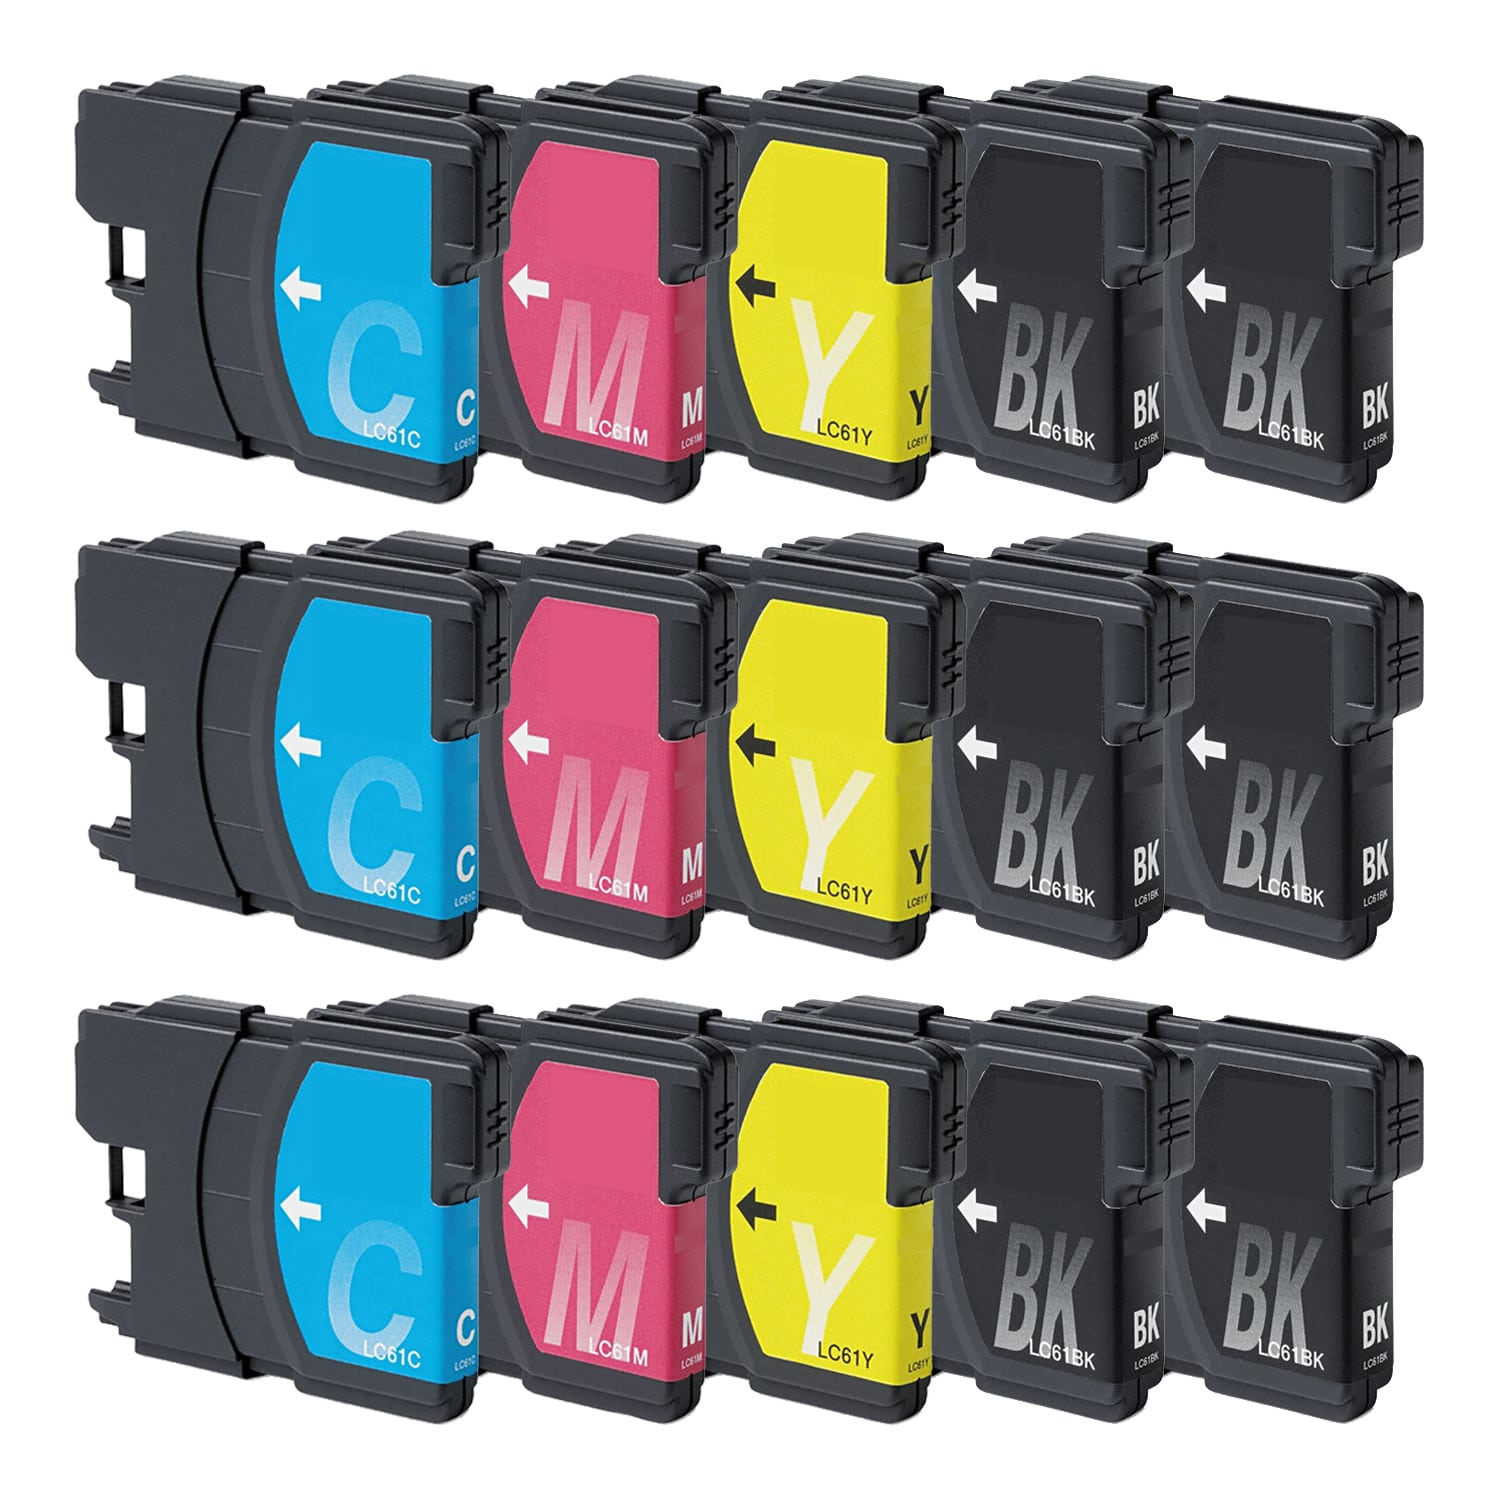 Compatible Brother LC61 Inkjet Pack - 15 Cartridges